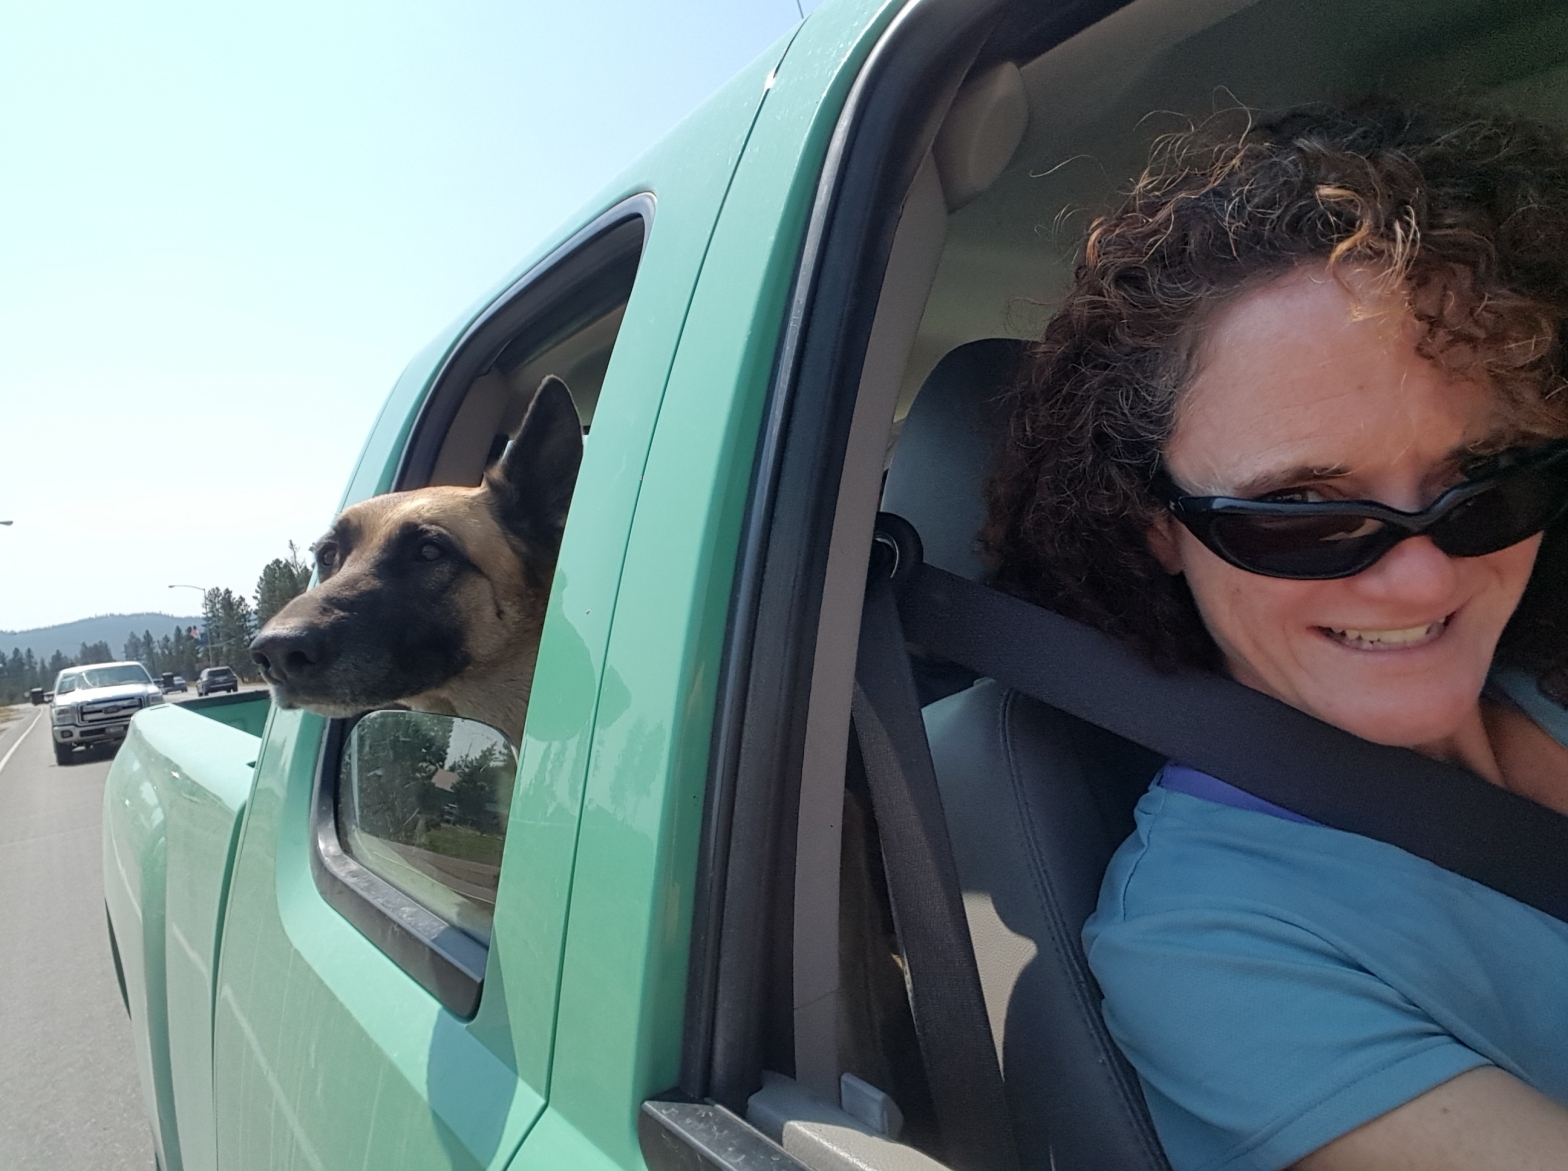 Sarah Fry leans out the passenger window of a truck and her dog's head sticks out the window behind her.